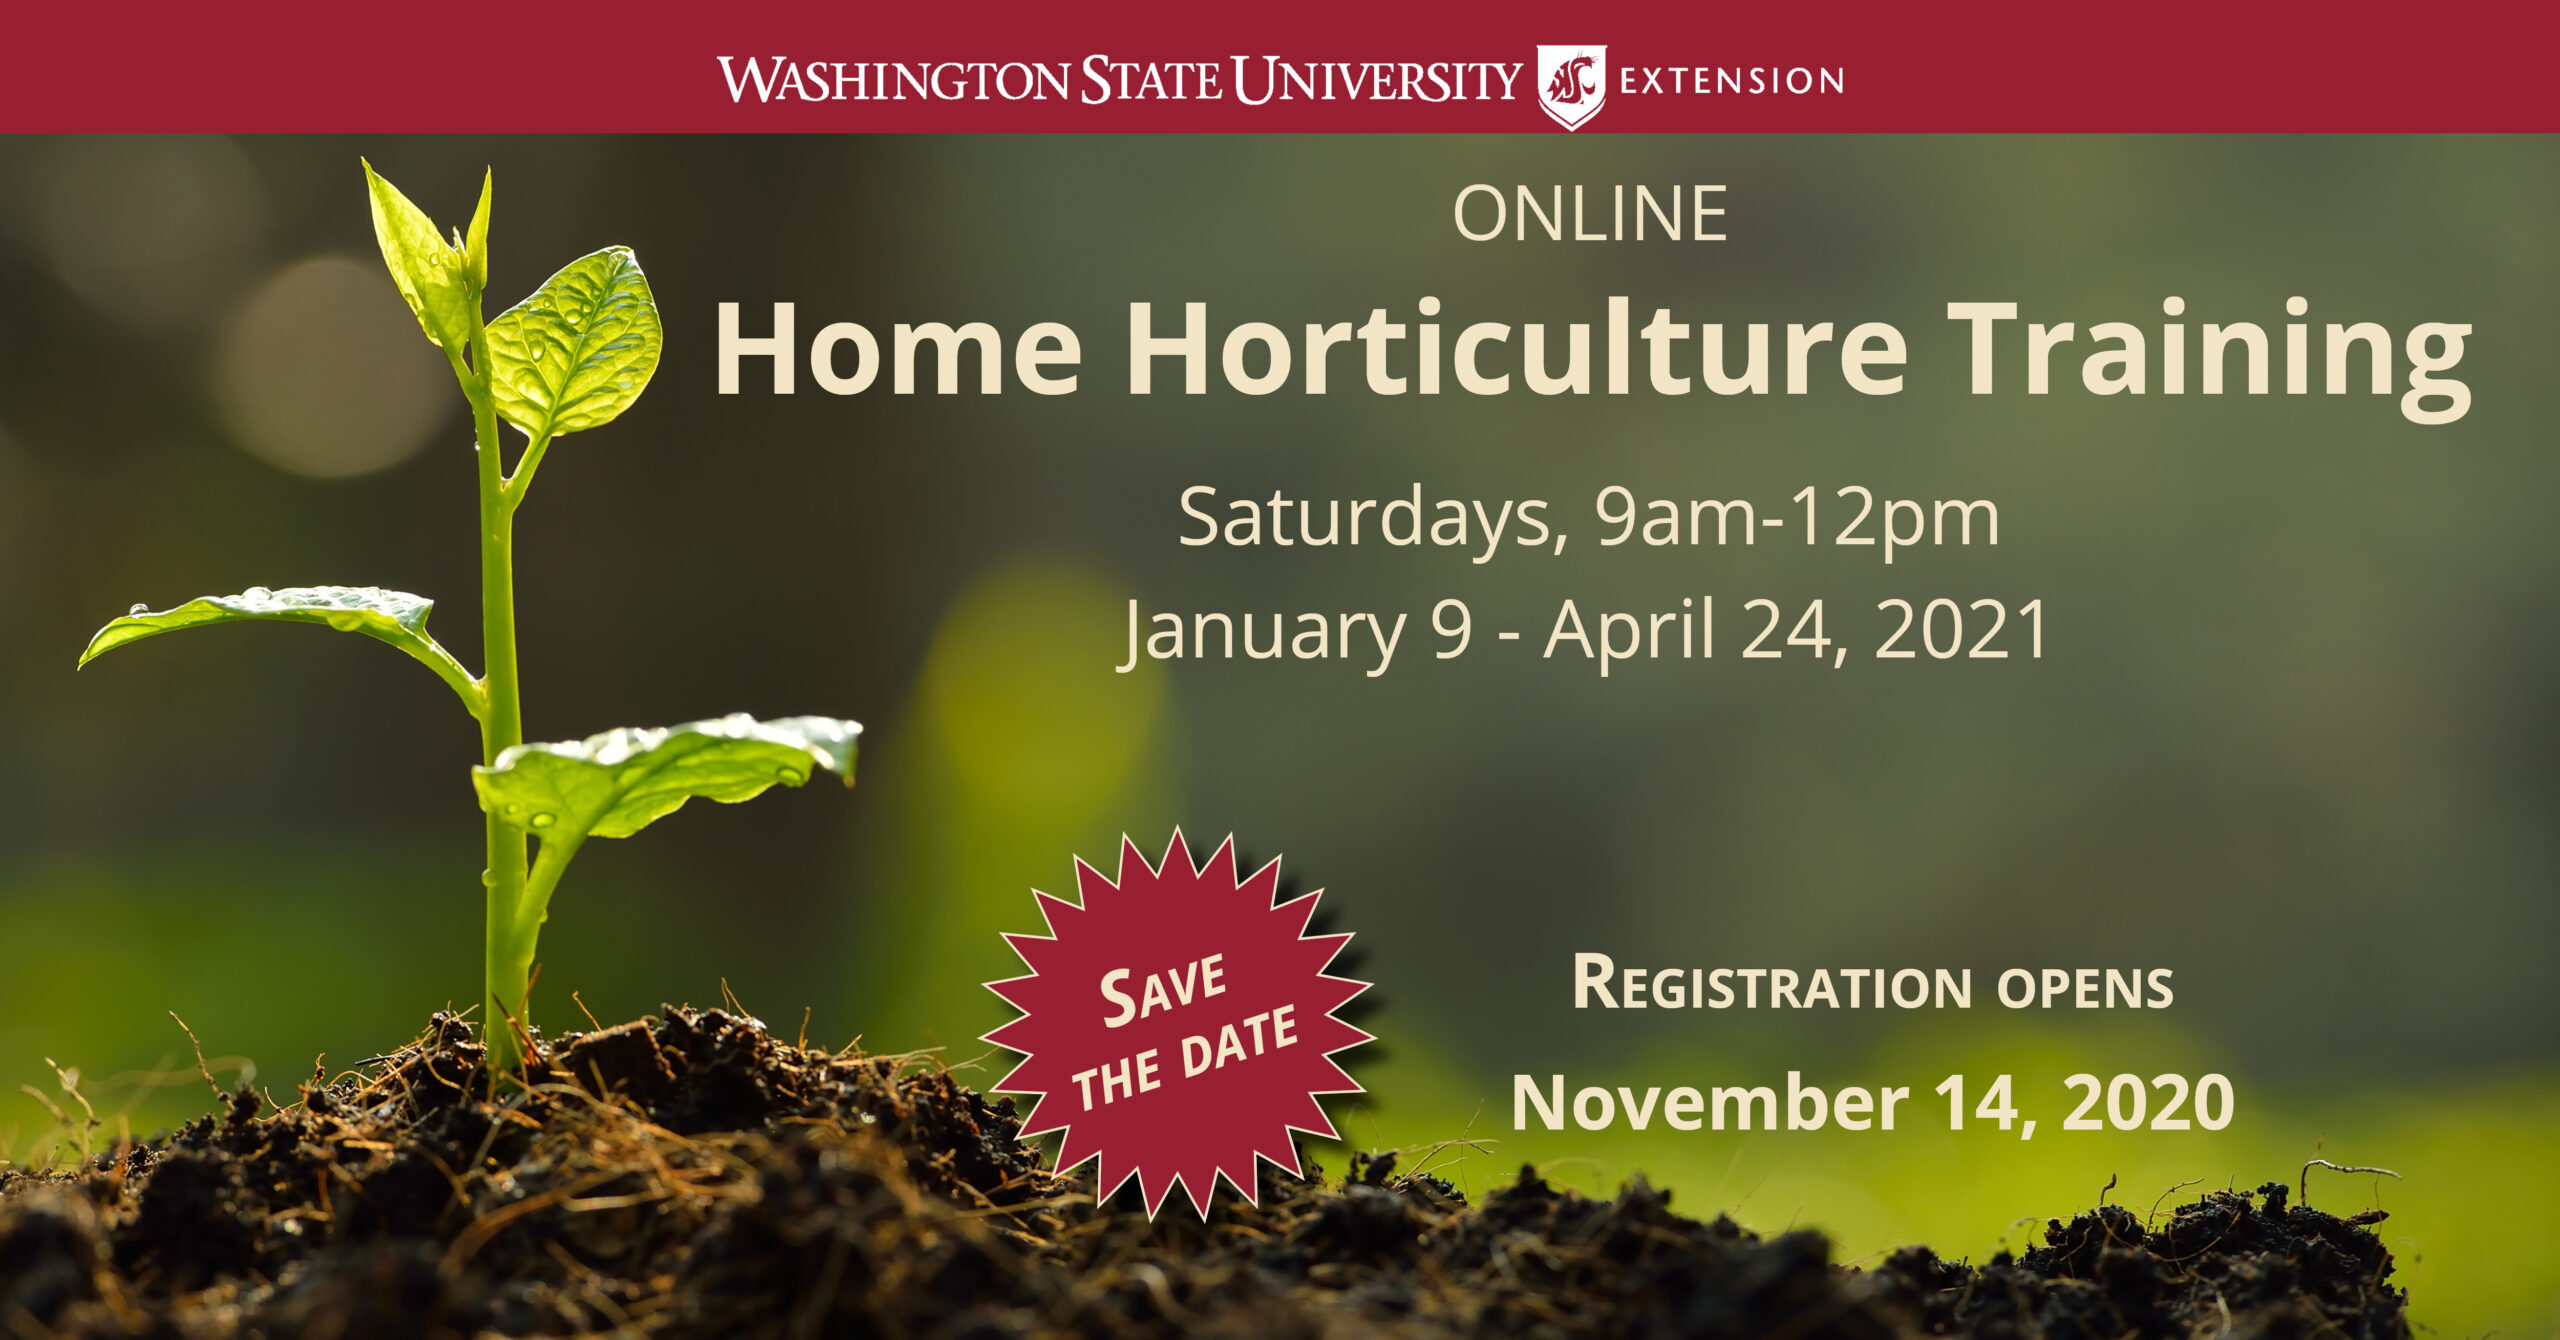 Online Home Horticulture Training Announcement